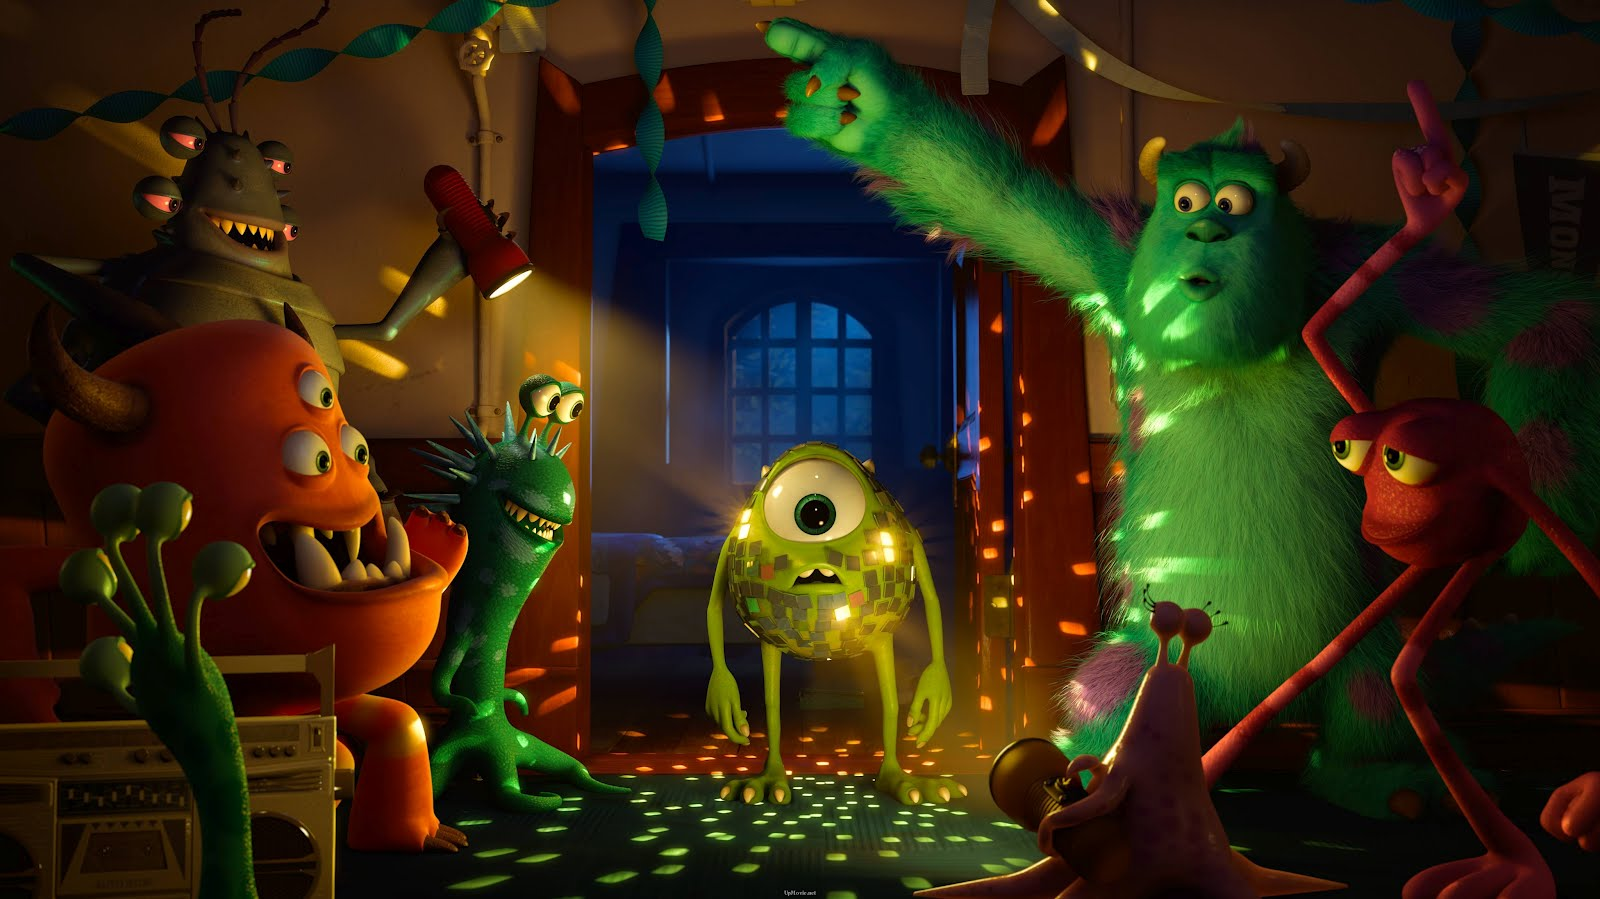 http://1.bp.blogspot.com/-a2eA8aQAcvI/T-fTuwxEkqI/AAAAAAAAEFA/-vS9MbSbiPs/s1600/Monster-University-2013-wallpaper-5.jpg